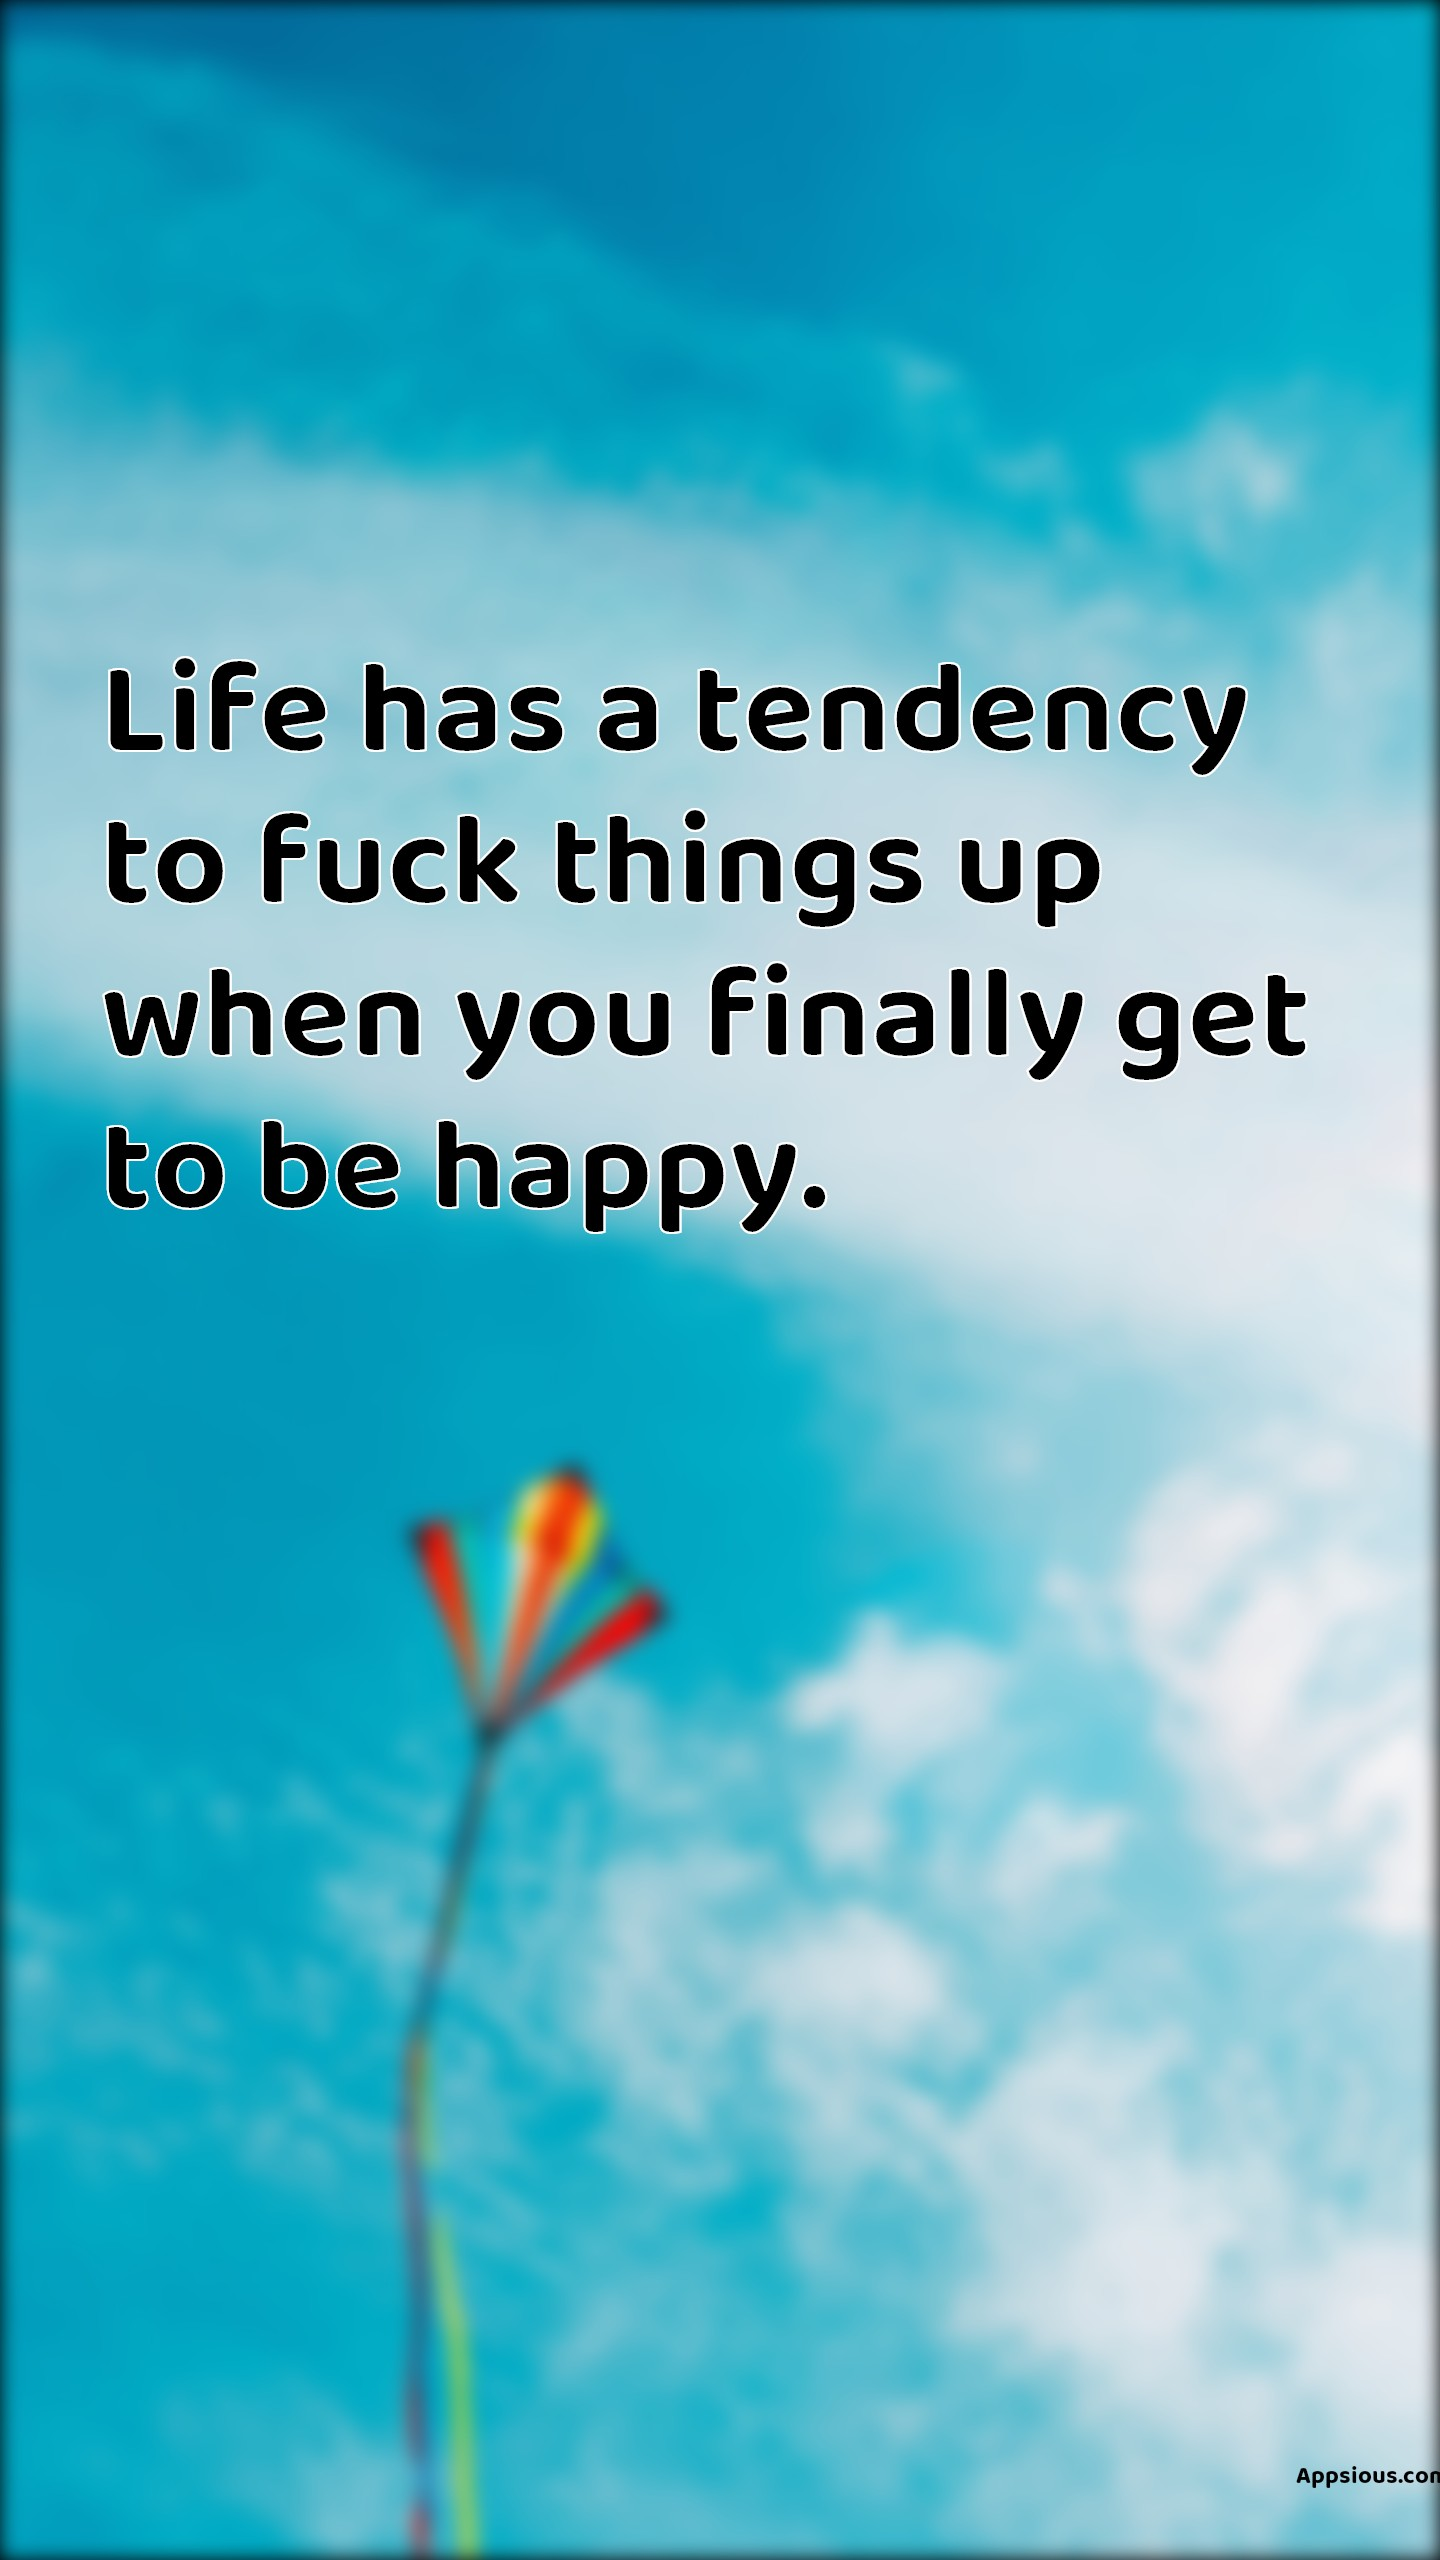 Life has a tendency to fuck things up when you finally get to be happy.